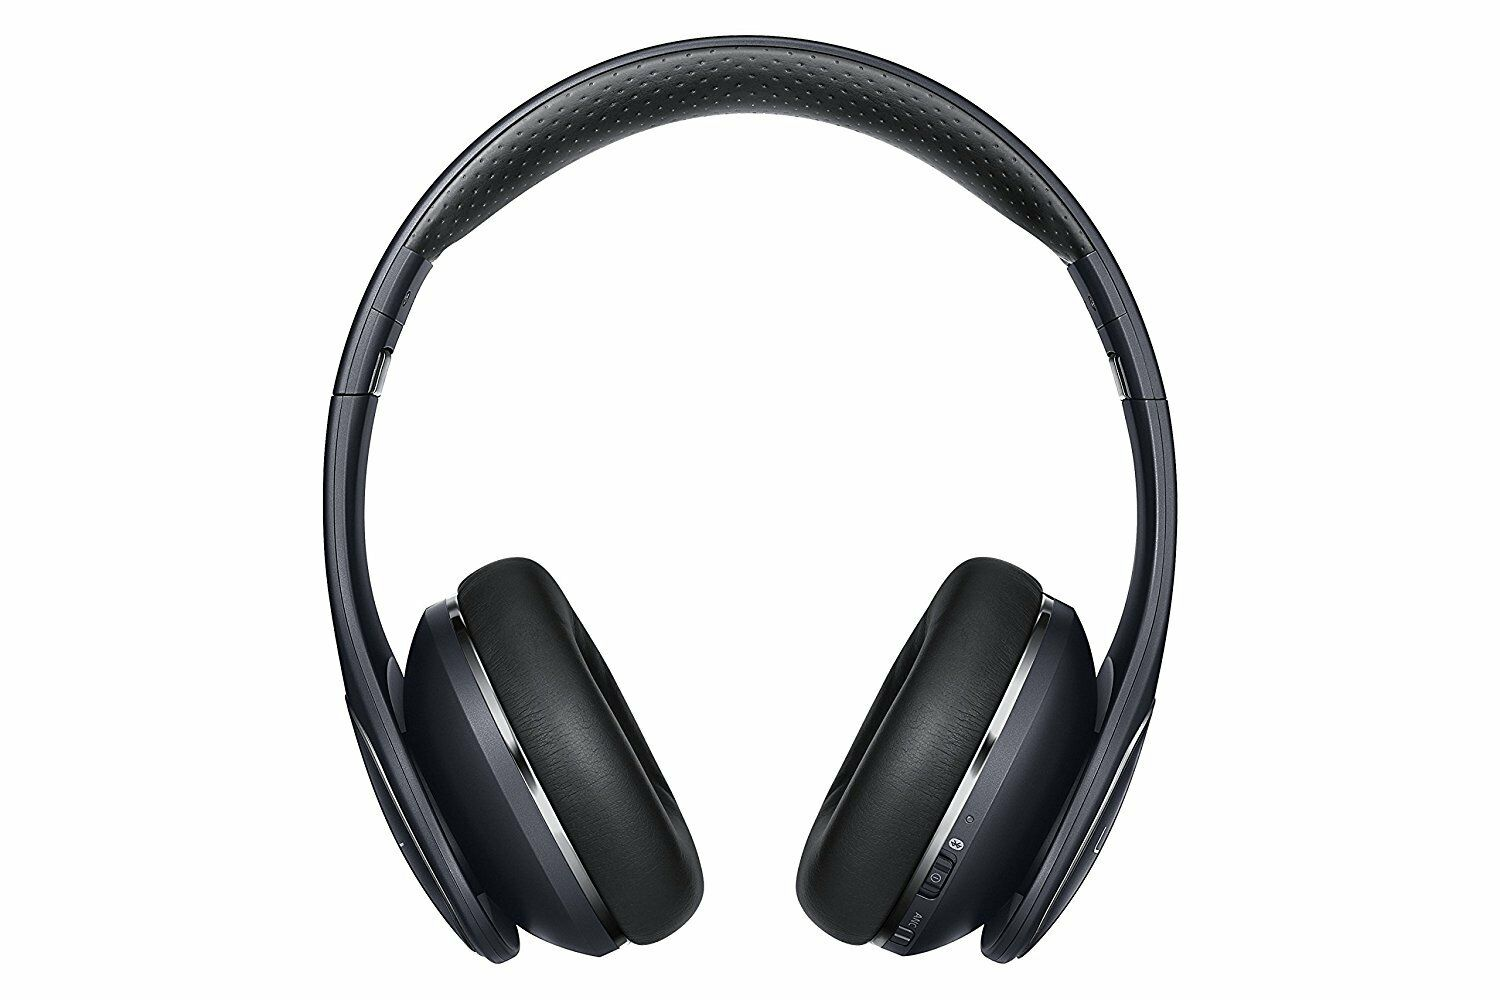 *BRAND NEW* Samsung Level On PRO Wireless Noise Cancelling